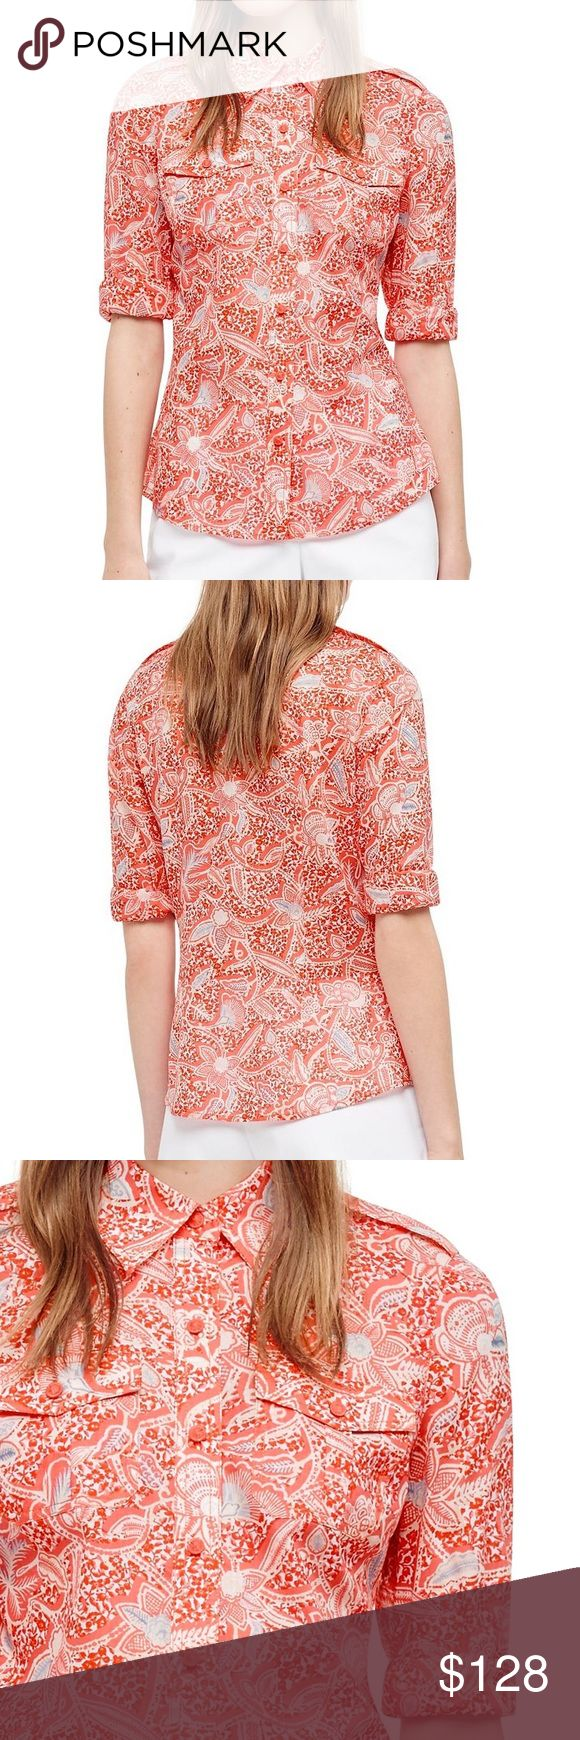 """Pink + White Melon Emmarentia Brigitte Blouse This Brigitte Blouse has a pretty mix of tropical blooms layered over small-scale flowers — a pattern inspired by an African wax print. A wardrobe classic, and one of Tory's signature styles, it's made of ultra-light cotton voile. Menswear-inspired but tailored, the fitted silhouette features safari details, including epaulettes and front flap pockets. Cotton. Length {25"""".} Item looks exactly as pictured. Offers always considered. Sold out item…"""